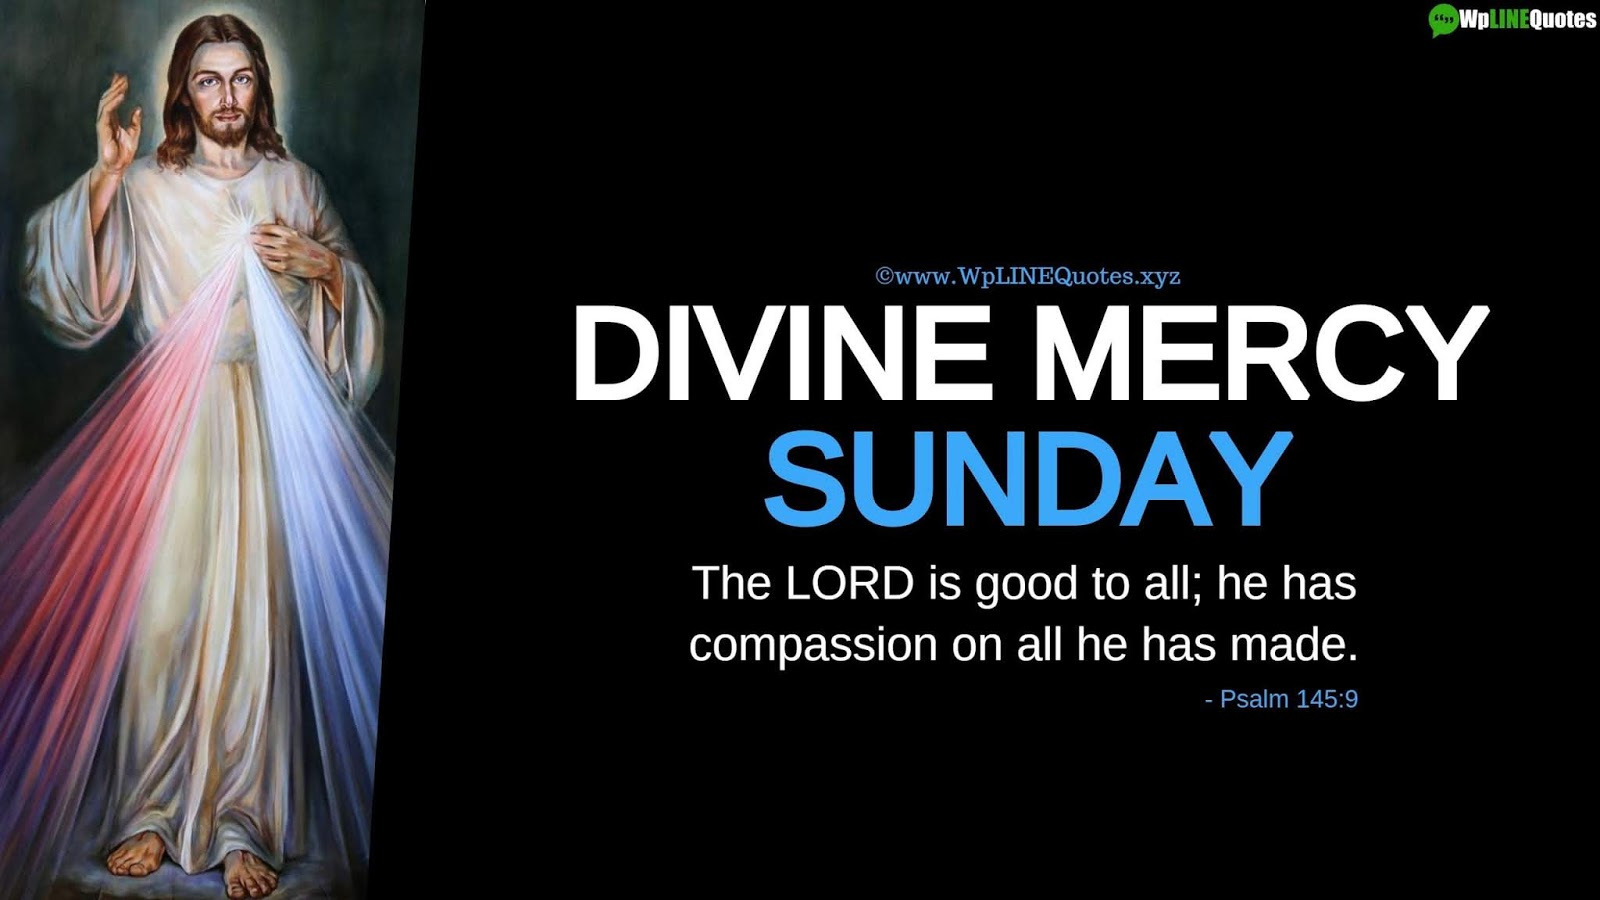 Divine Mercy Sunday Quotes, Wishes, Greetings, Meaning, History, Facts, Images, Pictures